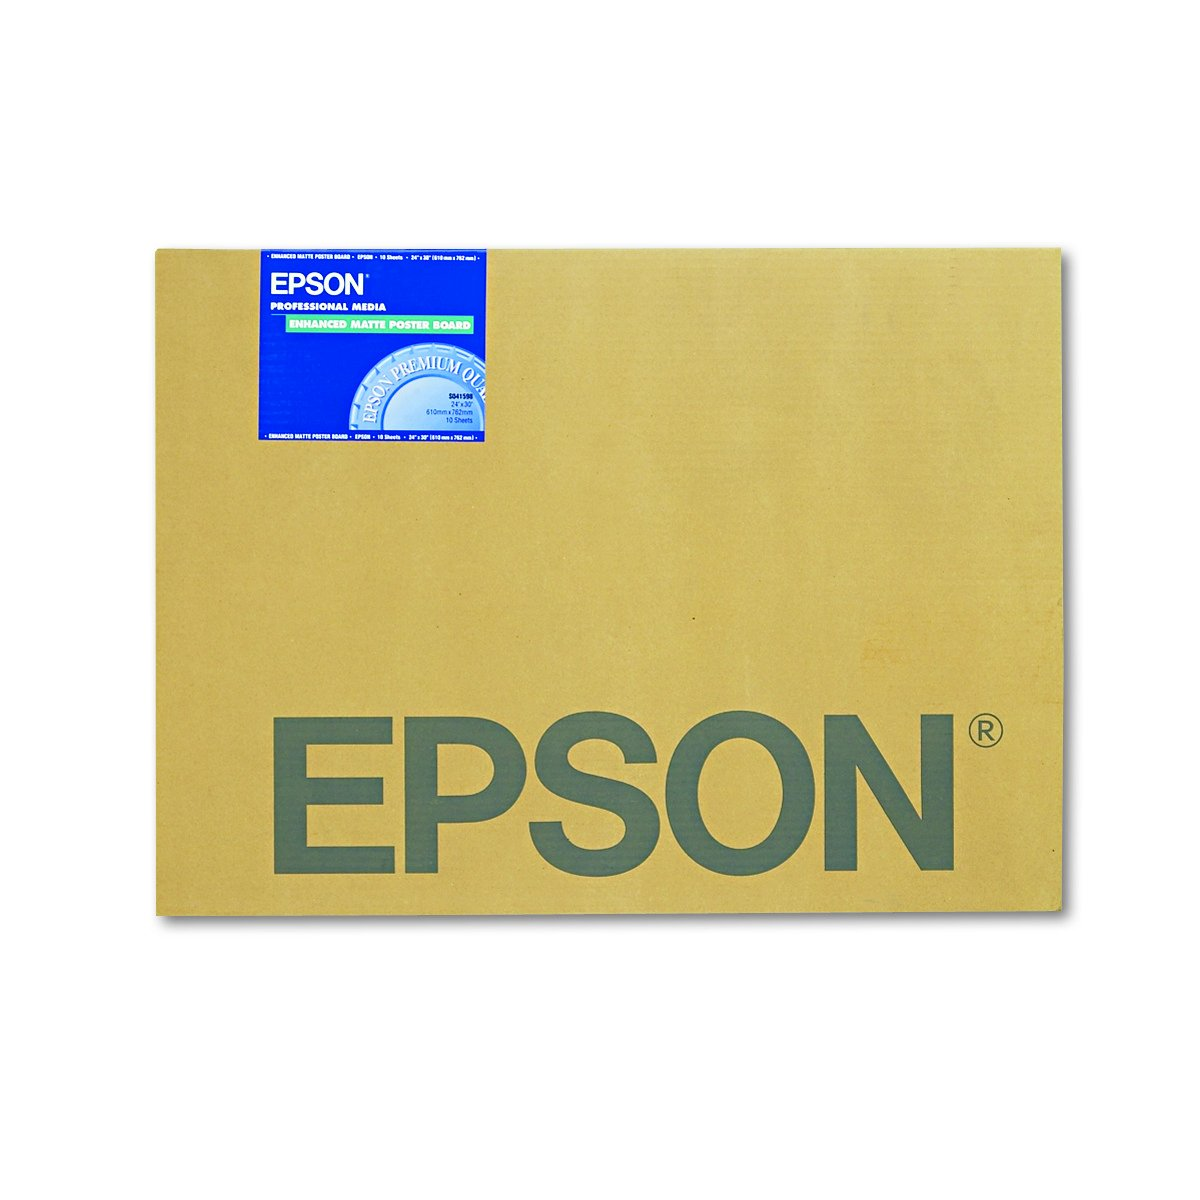 Epson S041598 Enhanced Matte Posterboard, 30 x 24, White (Pack of 10) by Epson